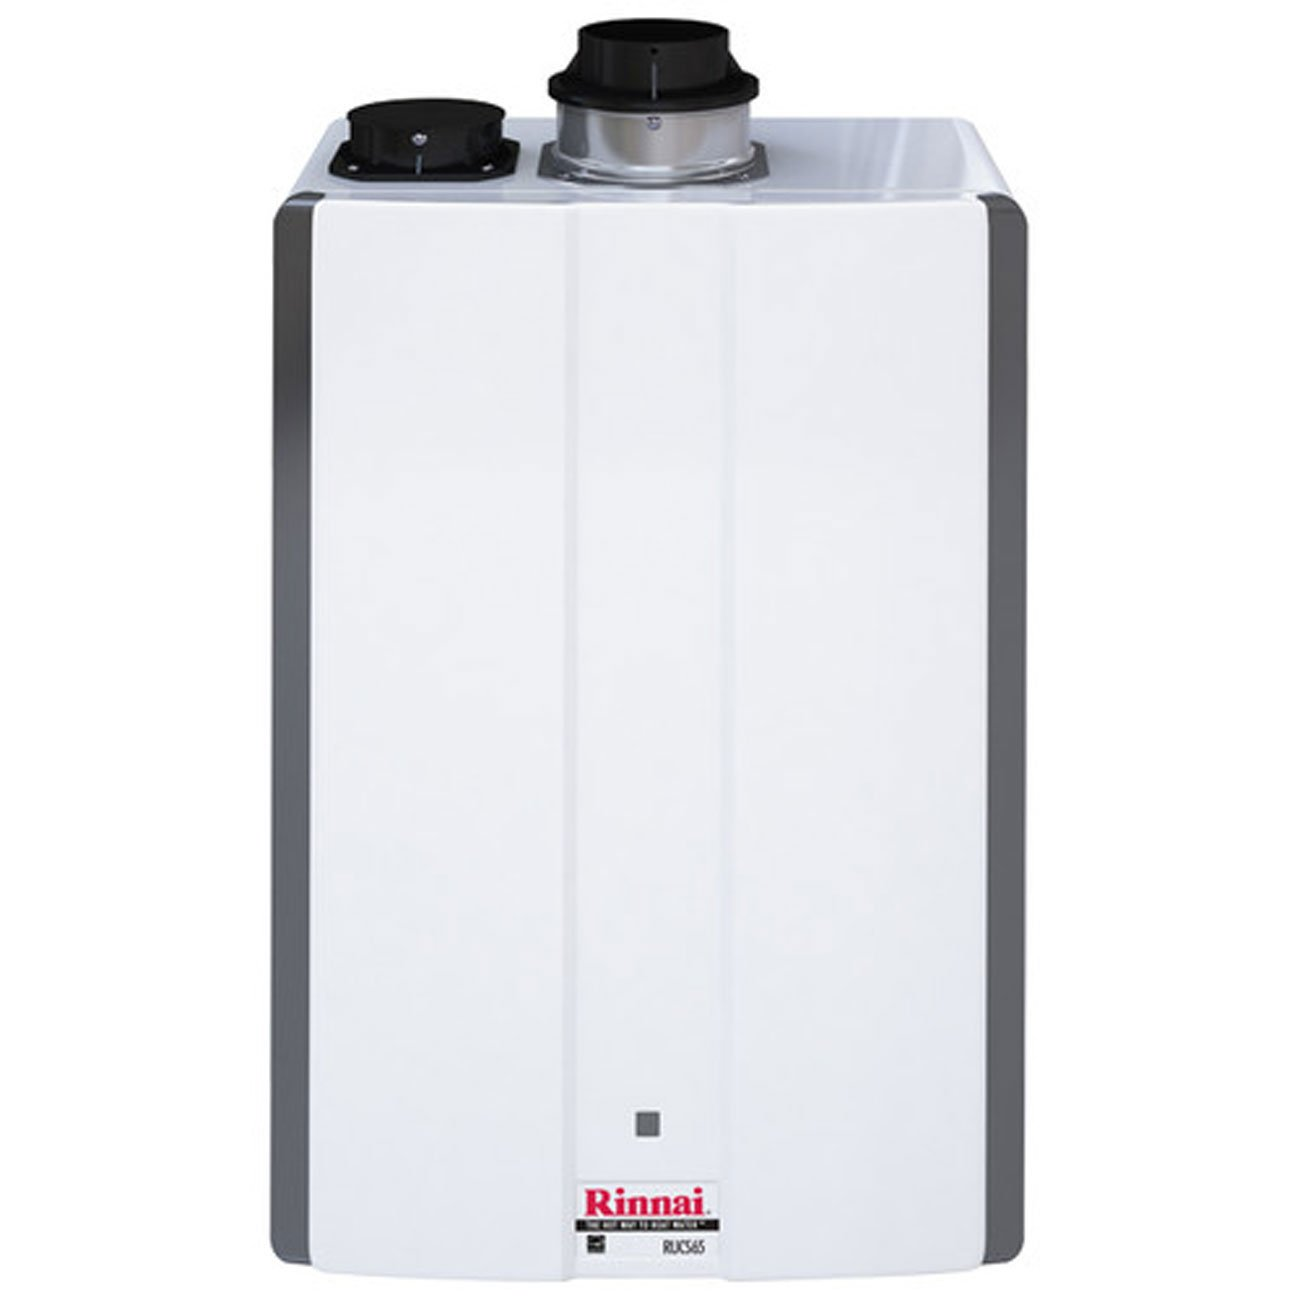 3. Rinnai RUCS75IN Ultra Series Tankless Water Heater, White